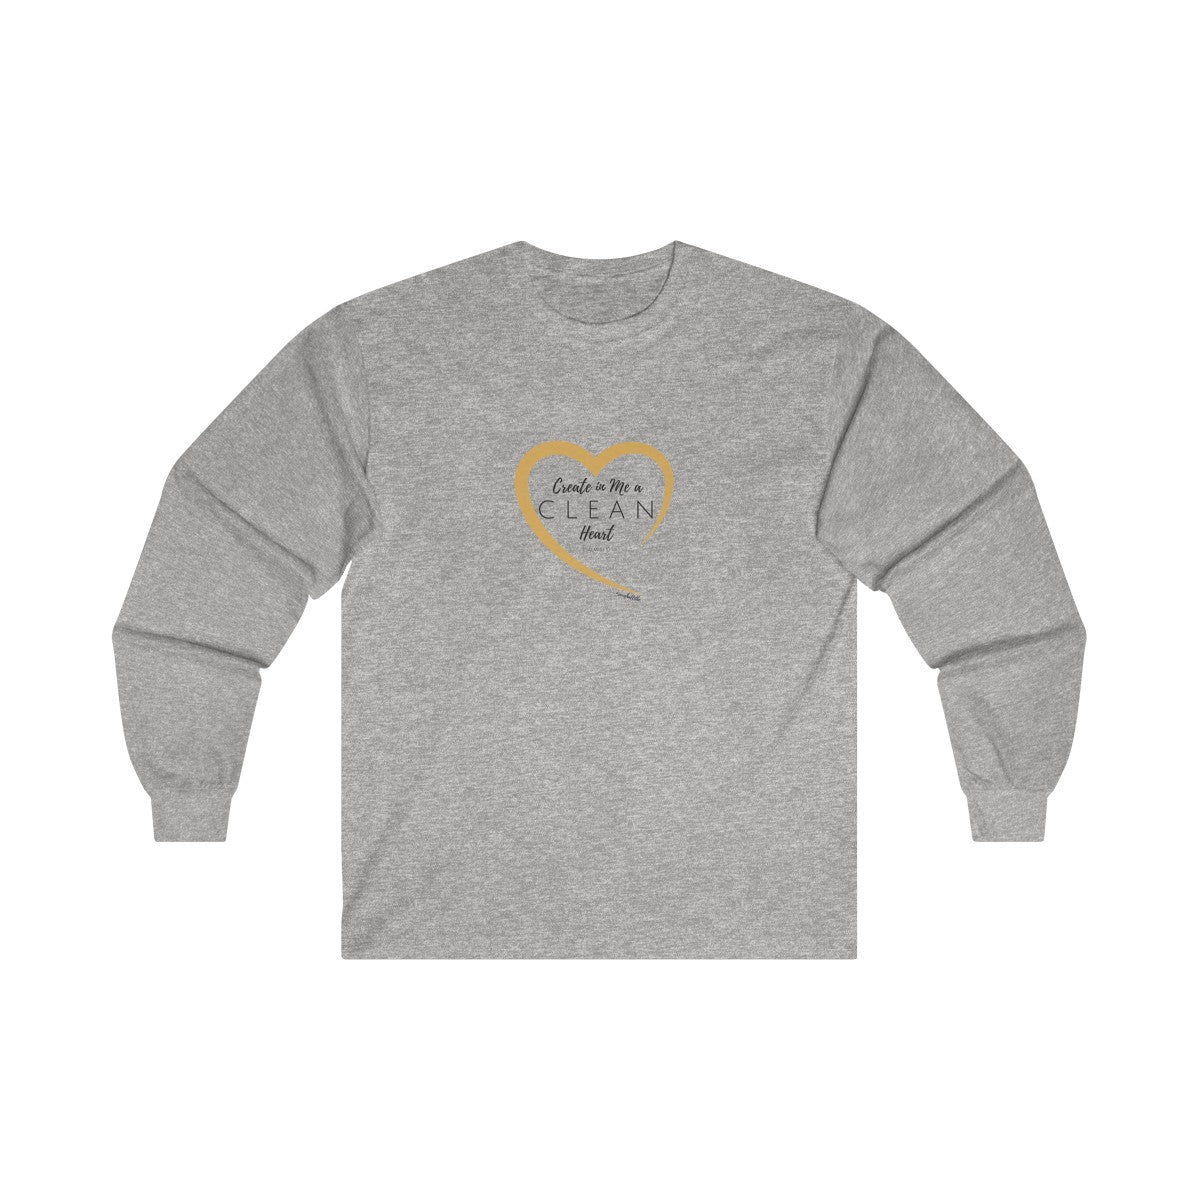 Psalm 51:10 Ultra Cotton Long Sleeve Tee